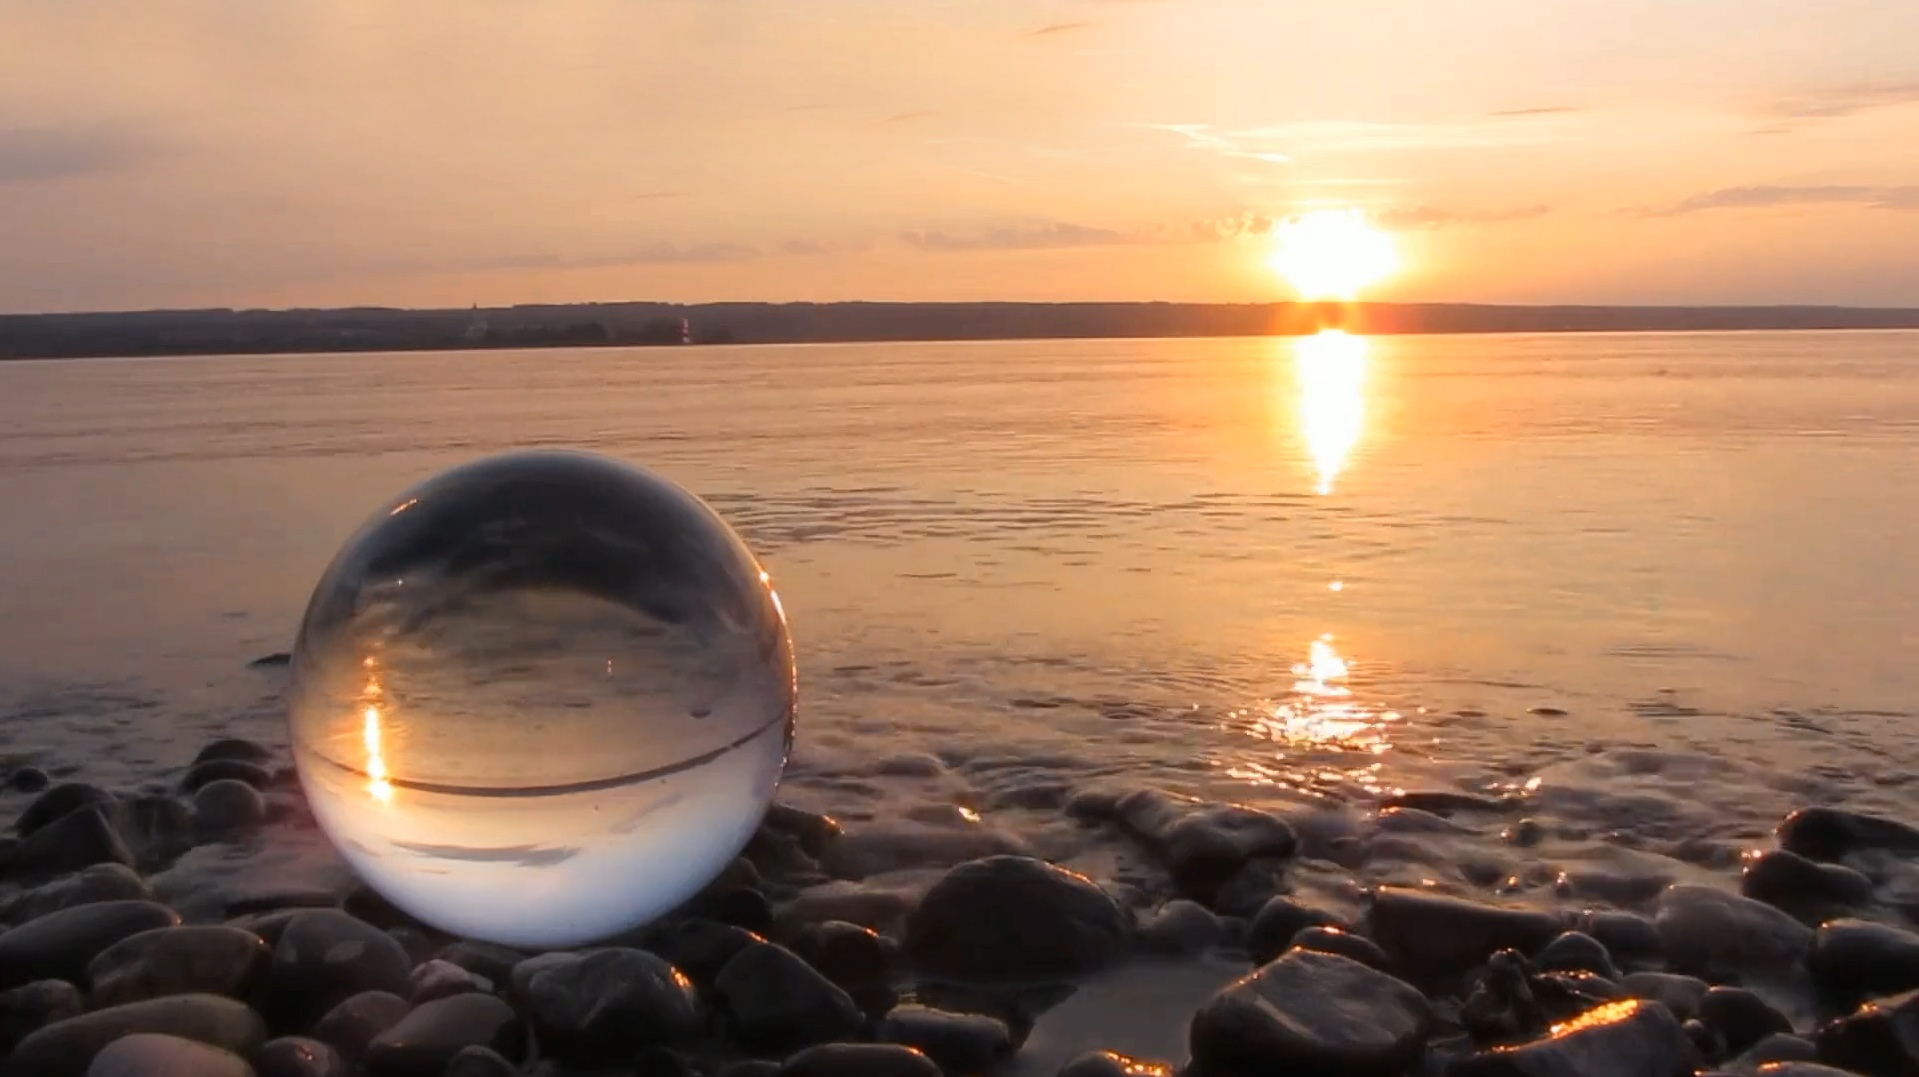 Glass Ball ( DeskScapes )